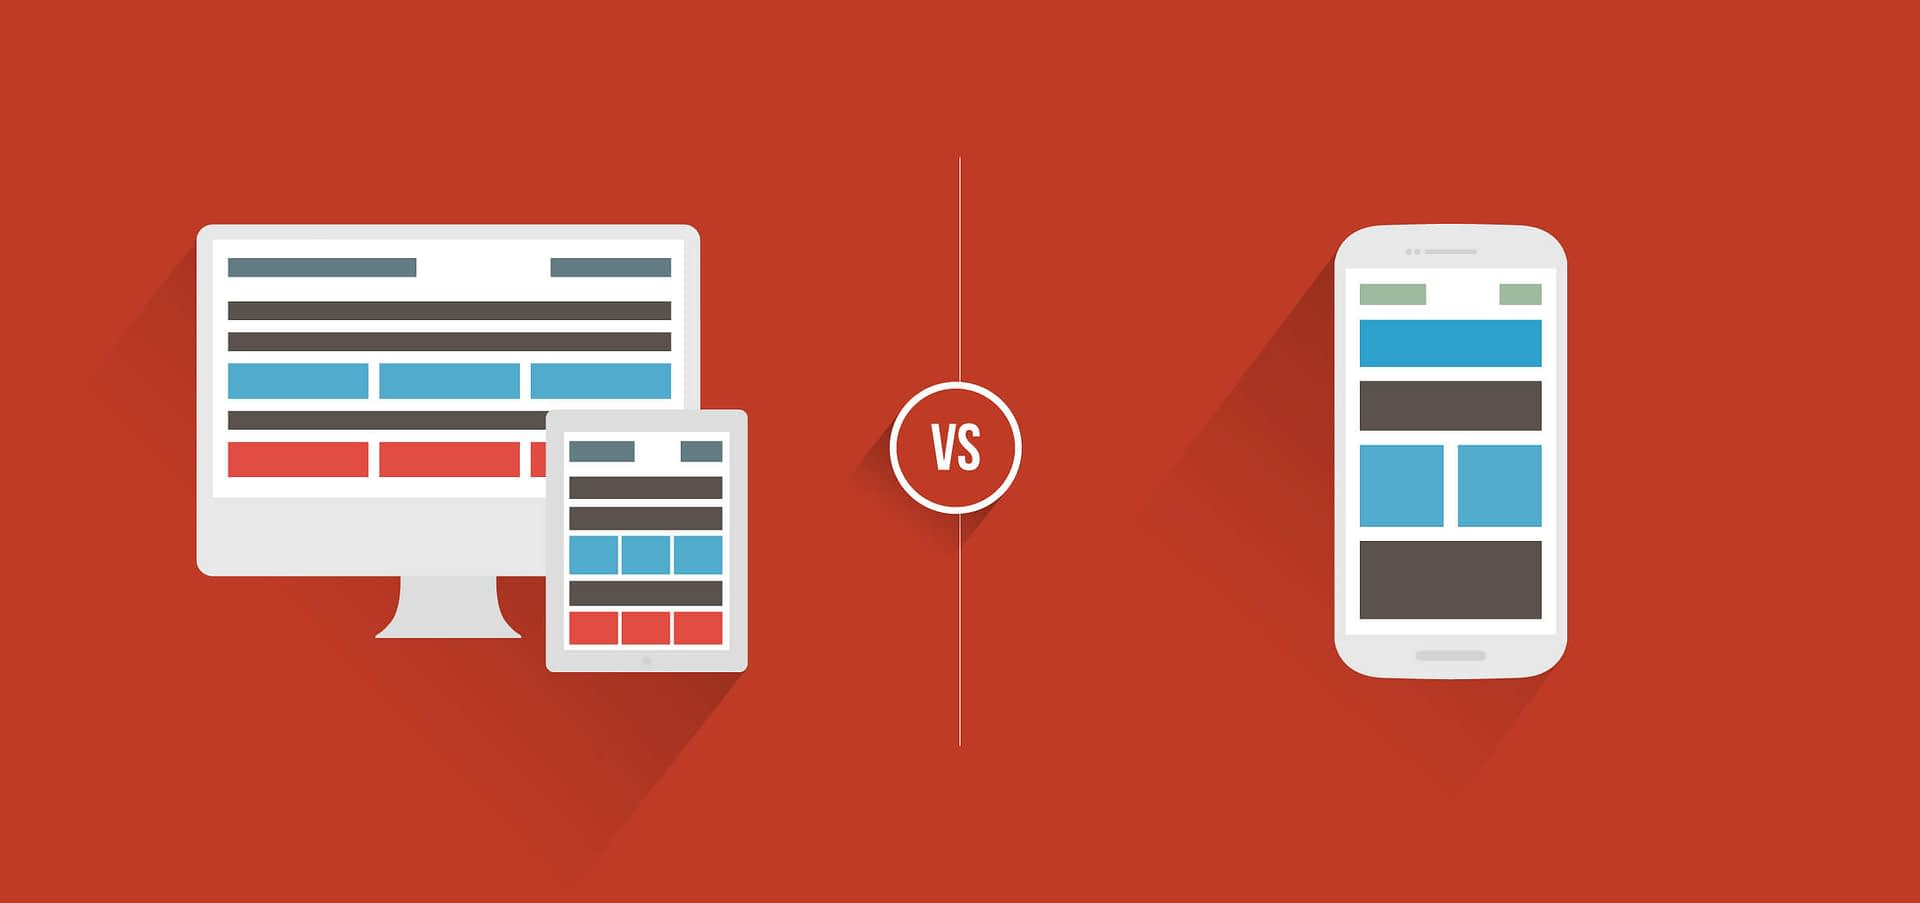 Mobile App Development or Mobile Website: Which is a Better Choice?